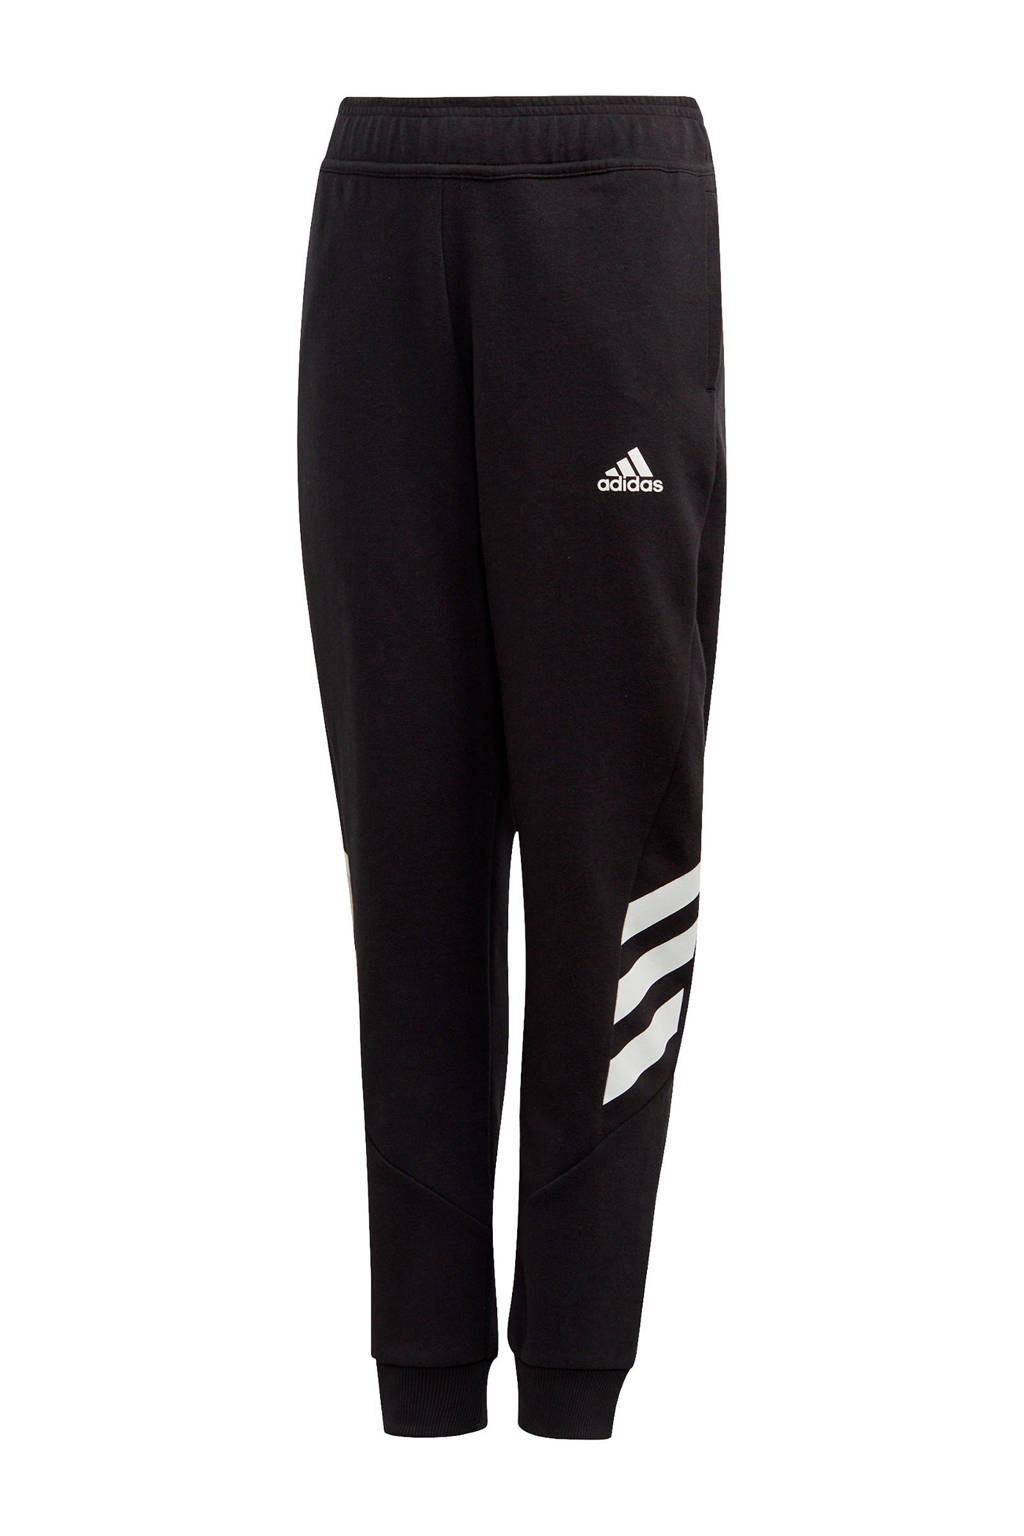 adidas Performance joggingbroek zwart/wit, Zwart/wit